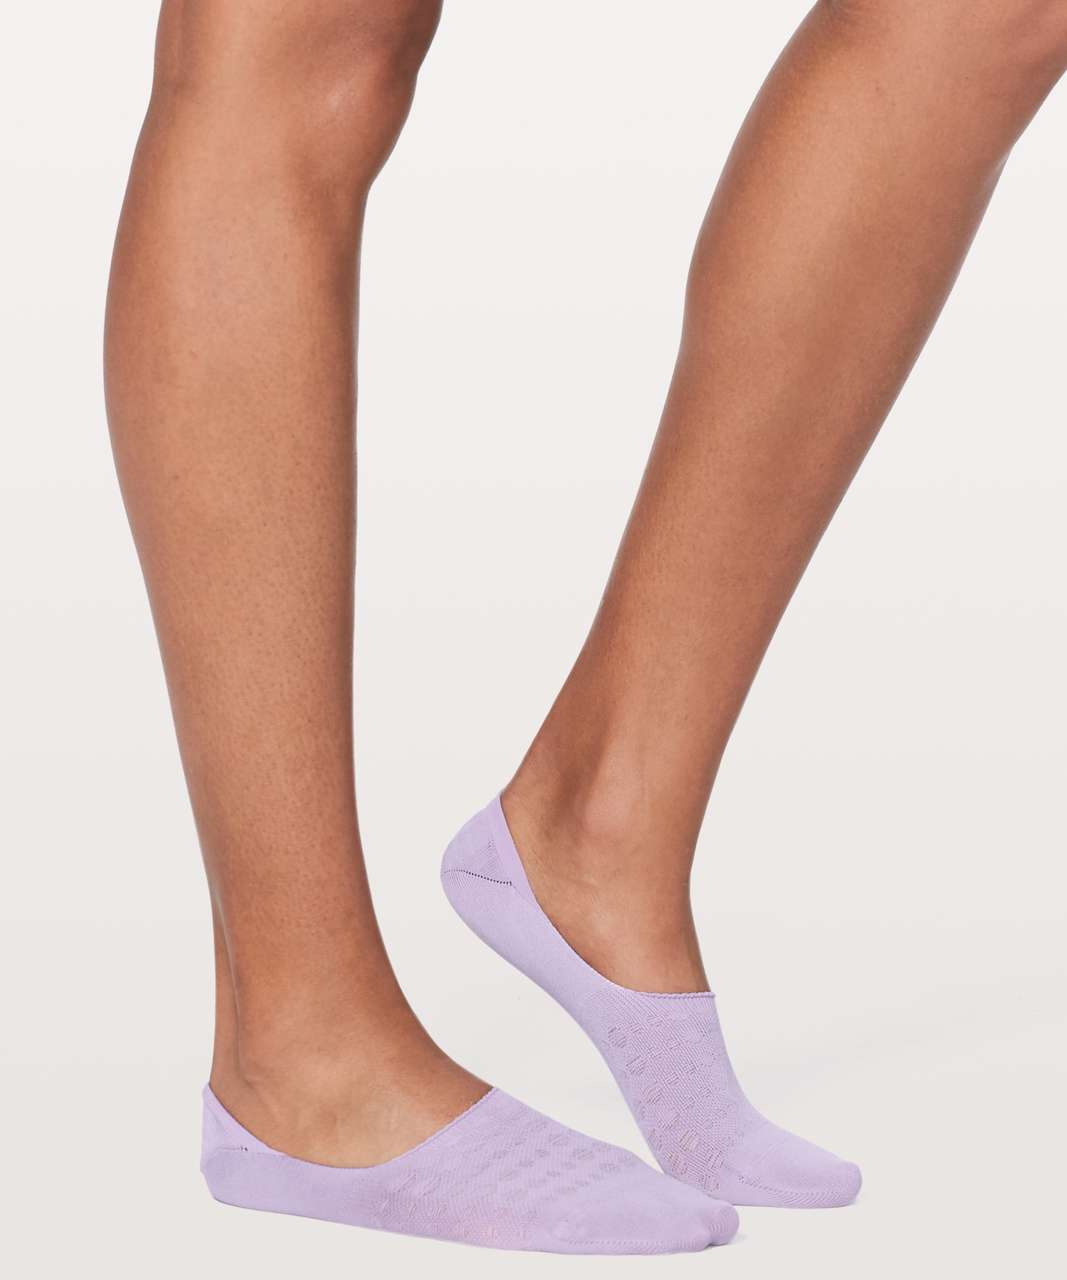 Lululemon Secret Sock - Lilac Quartz / Rose Quartz